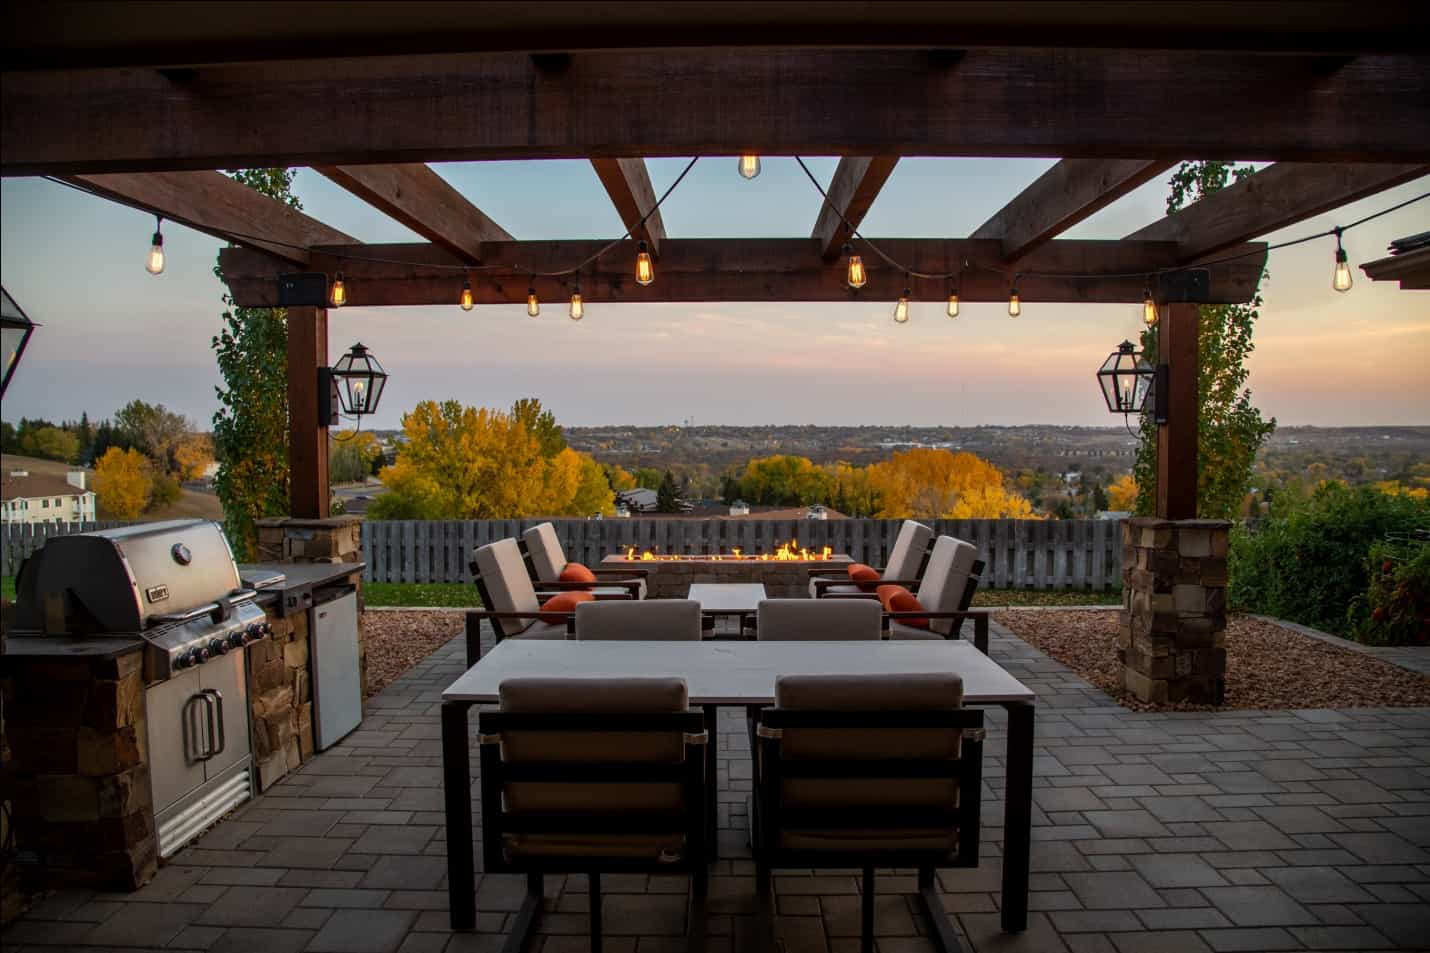 Patio during Golden Hour